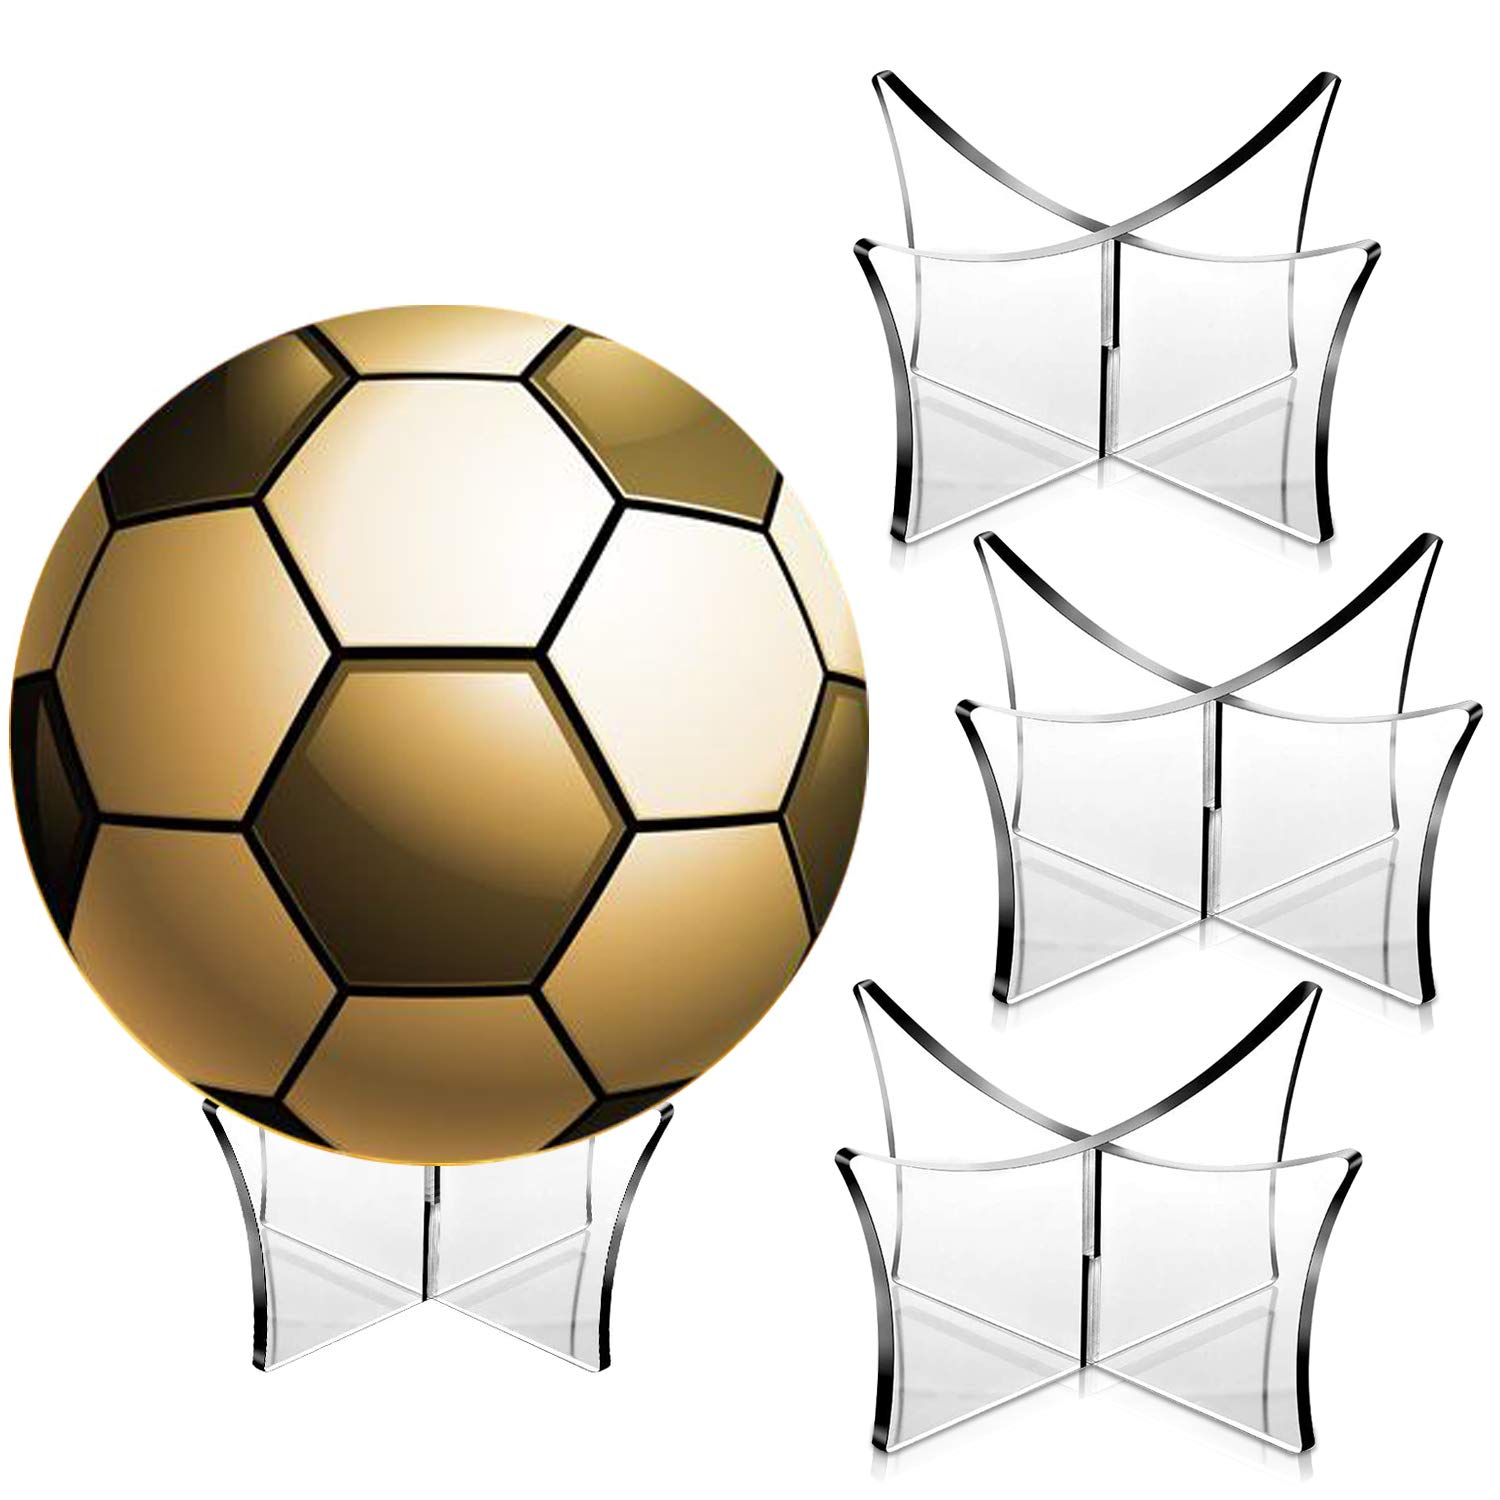 AMCEMIC 4PCS Football Stand Holder Acrylic Ball Display Stand Clear Basketball Football Soccer Stand for Volleyball Soccer Rugby Balls